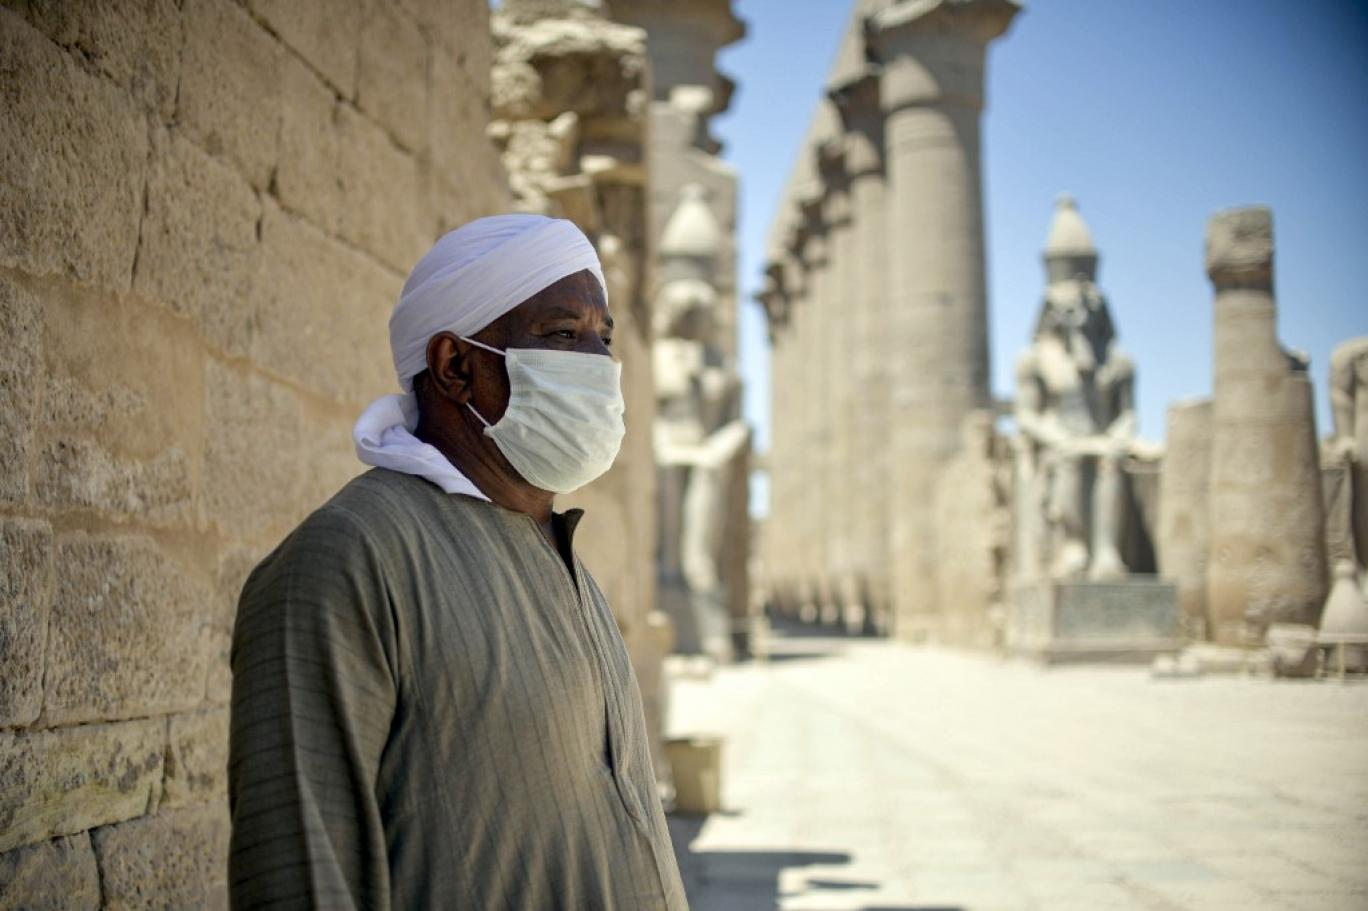 Egyptian tourism sector, which the country considers very important to its budget, recorded low revenues in 2020.